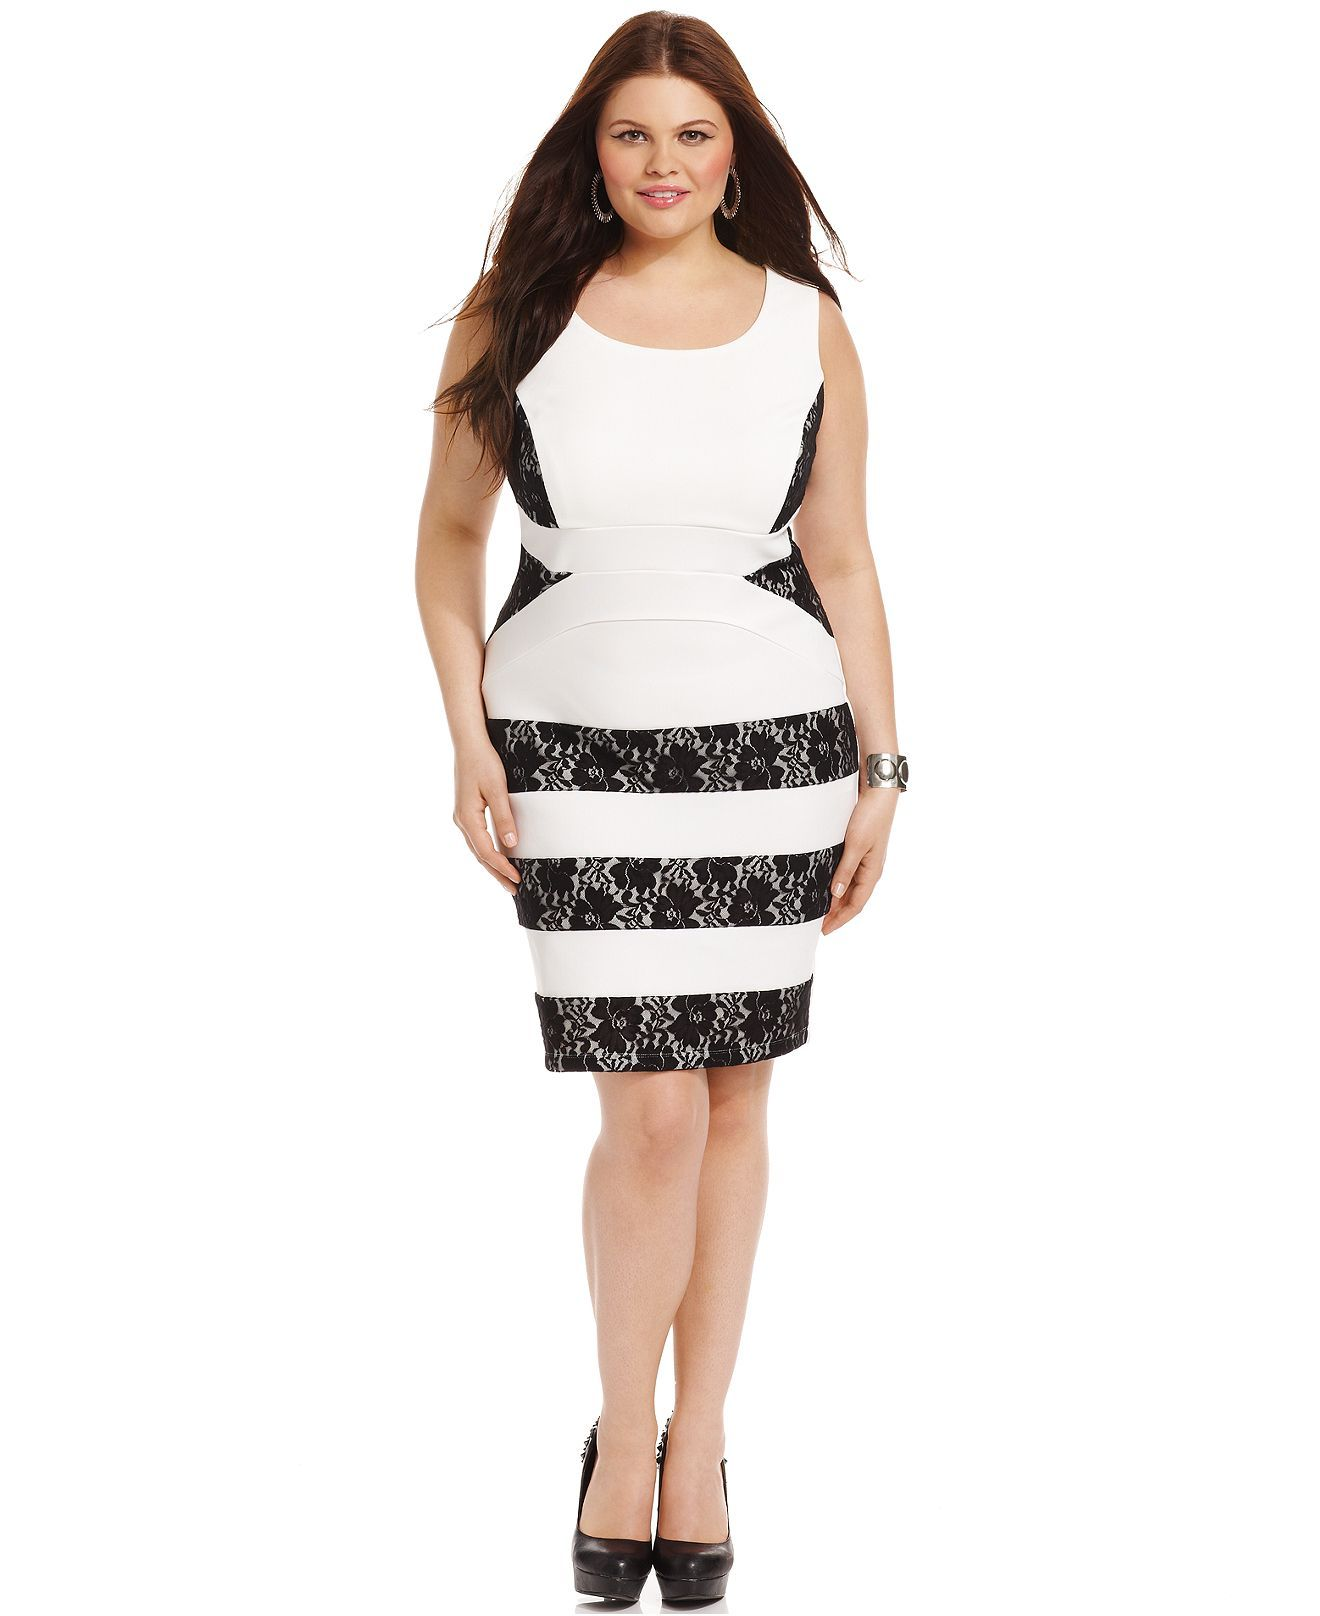 Ruby Rox Plus Size Dress, Sleeveless Lace Bandage - Junior Plus ...